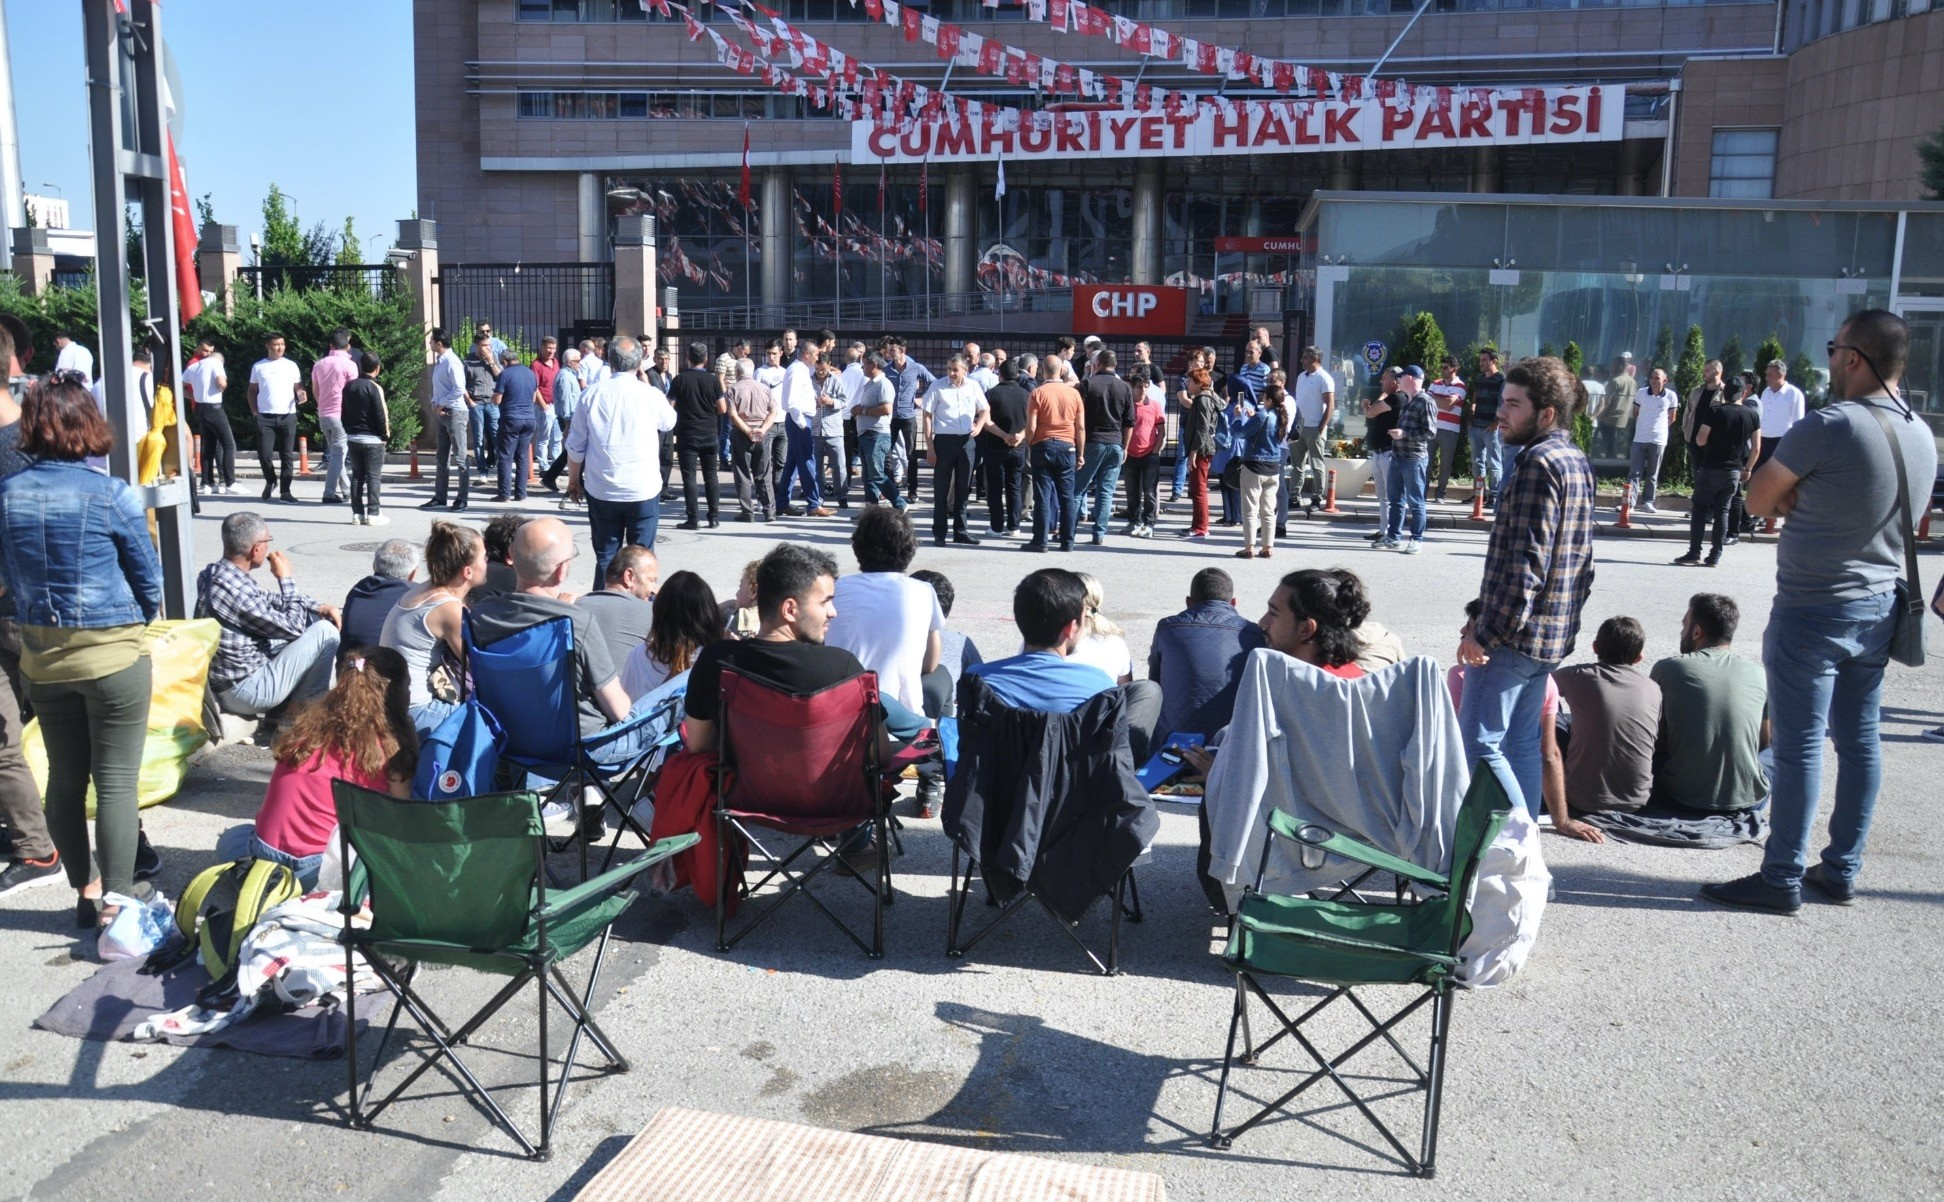 Following the elections, a group of CHP supporters gathered in front of the party's headquarters in Ankara to hold a sit-in protest against the partyu2019s Chairman Kemal Ku0131lu0131u00e7darou011flu, calling for his resignation, June 6.